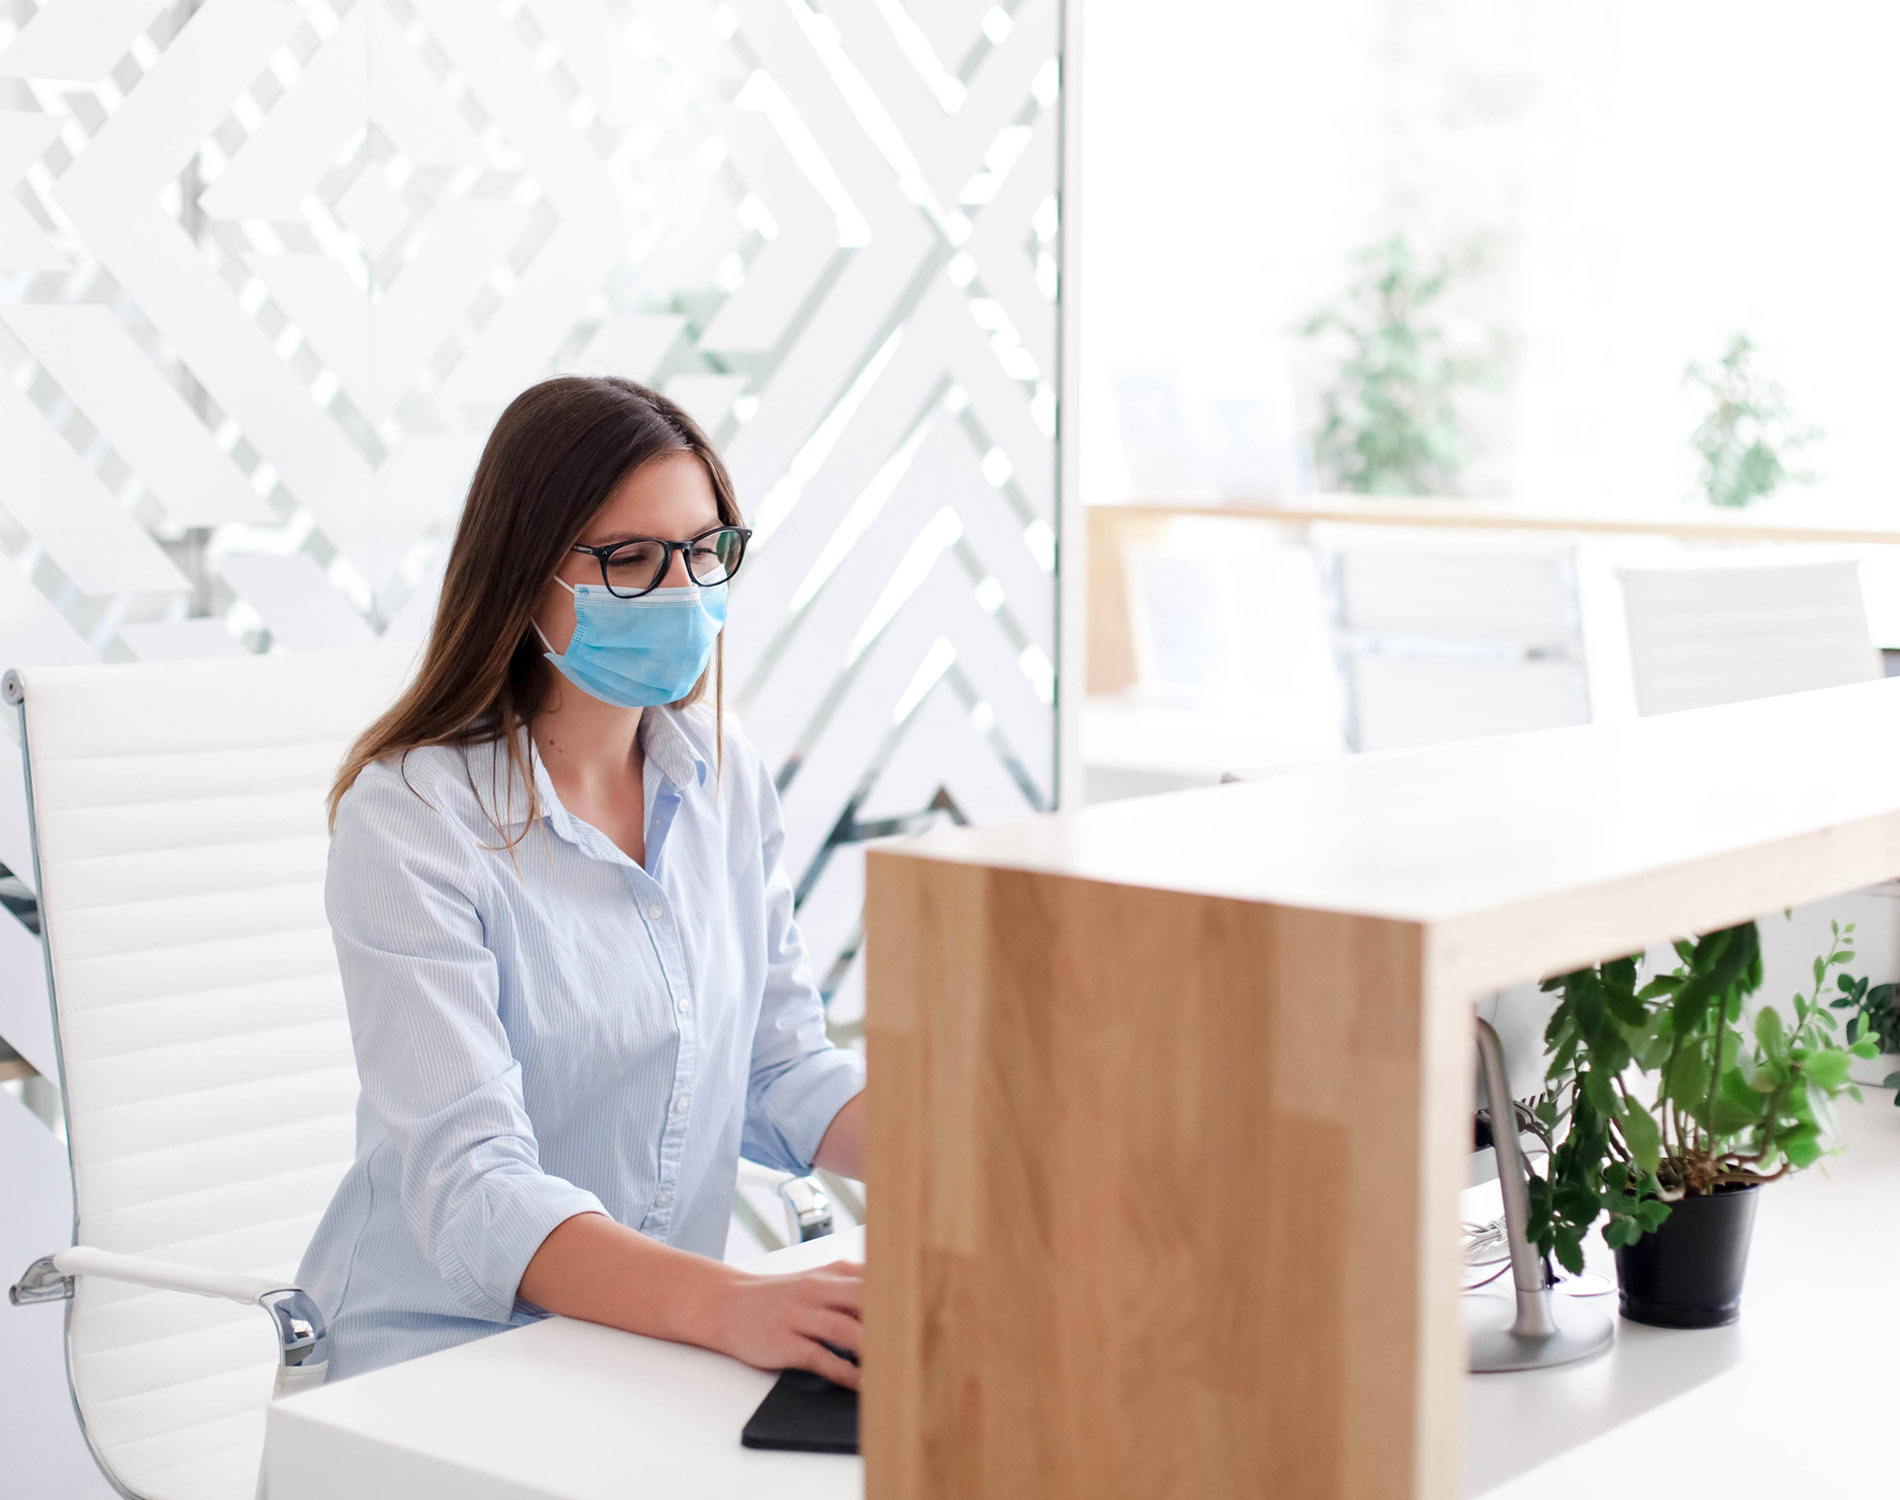 Woman wearing mask sitting at reception desk